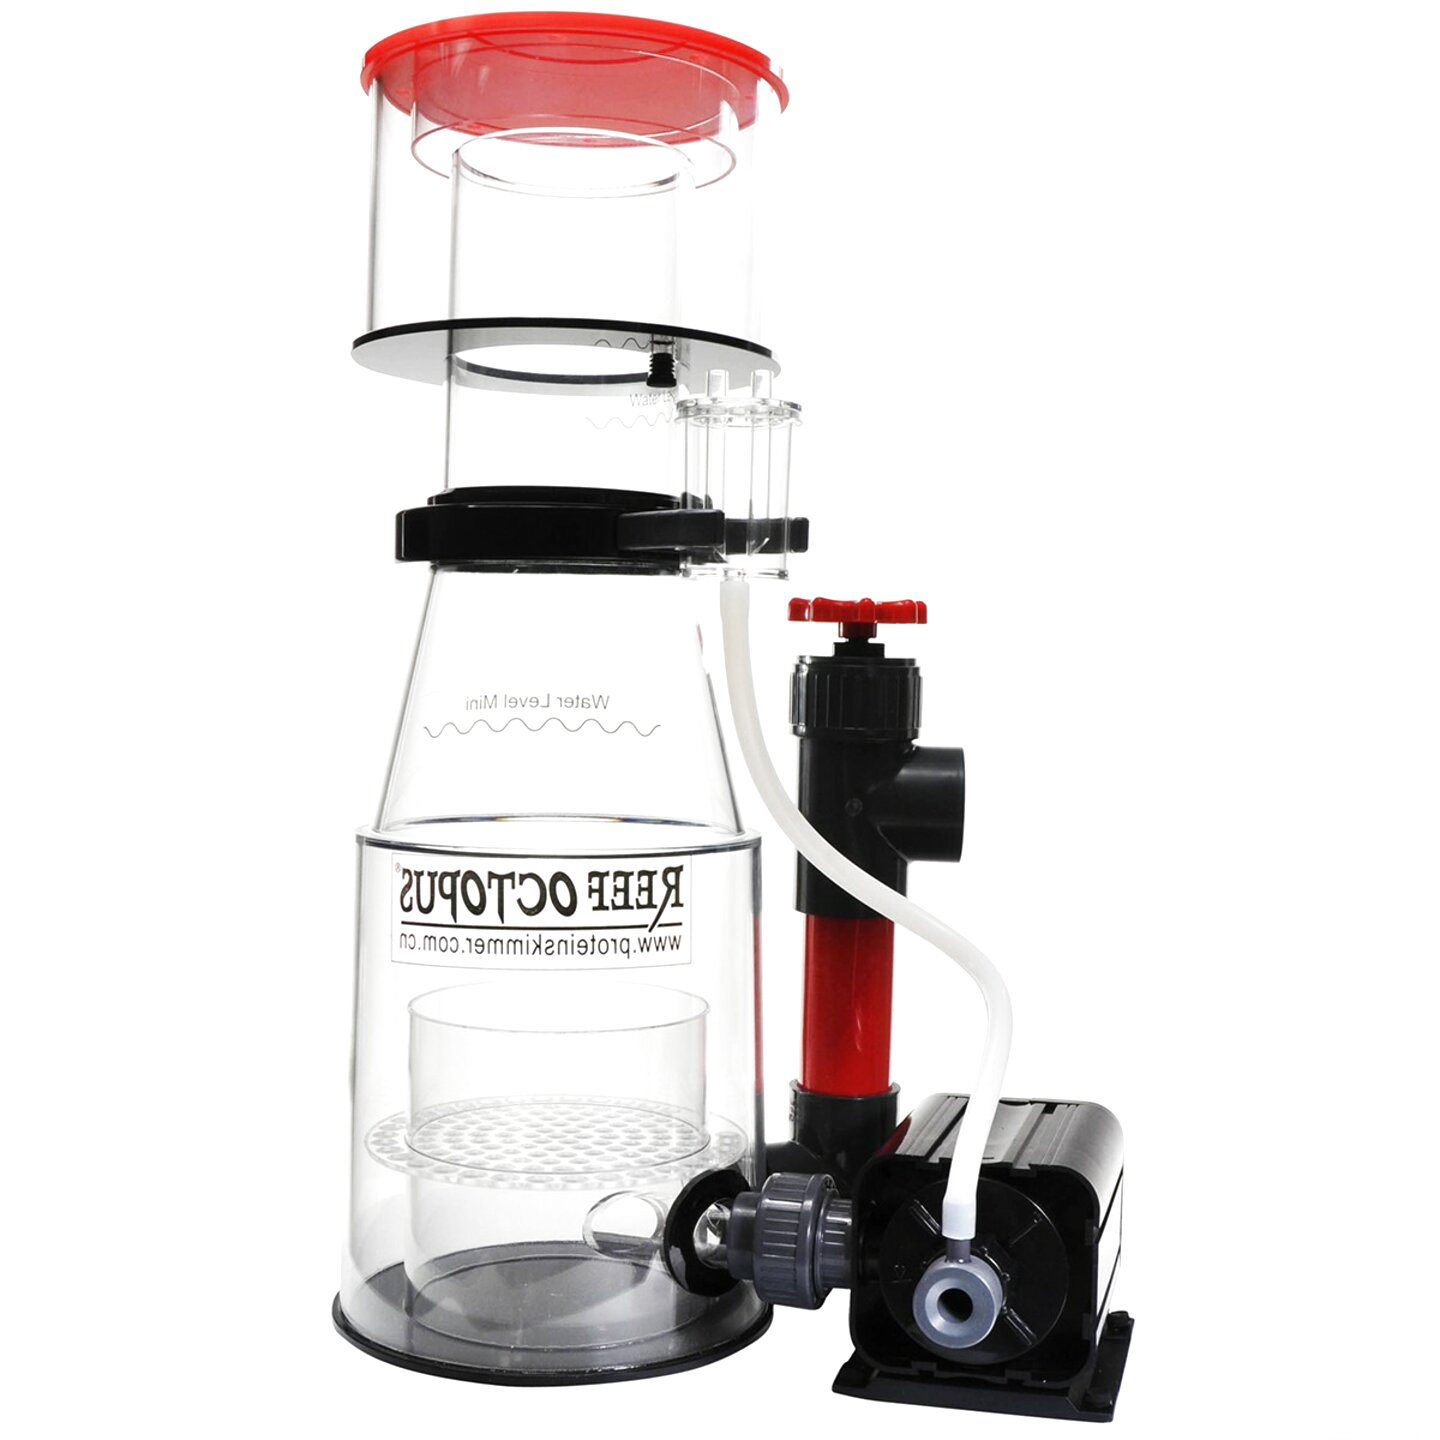 Reef Octopus Classic 152S Space Saver In Sump Protein Skimmer Authorized Dealer